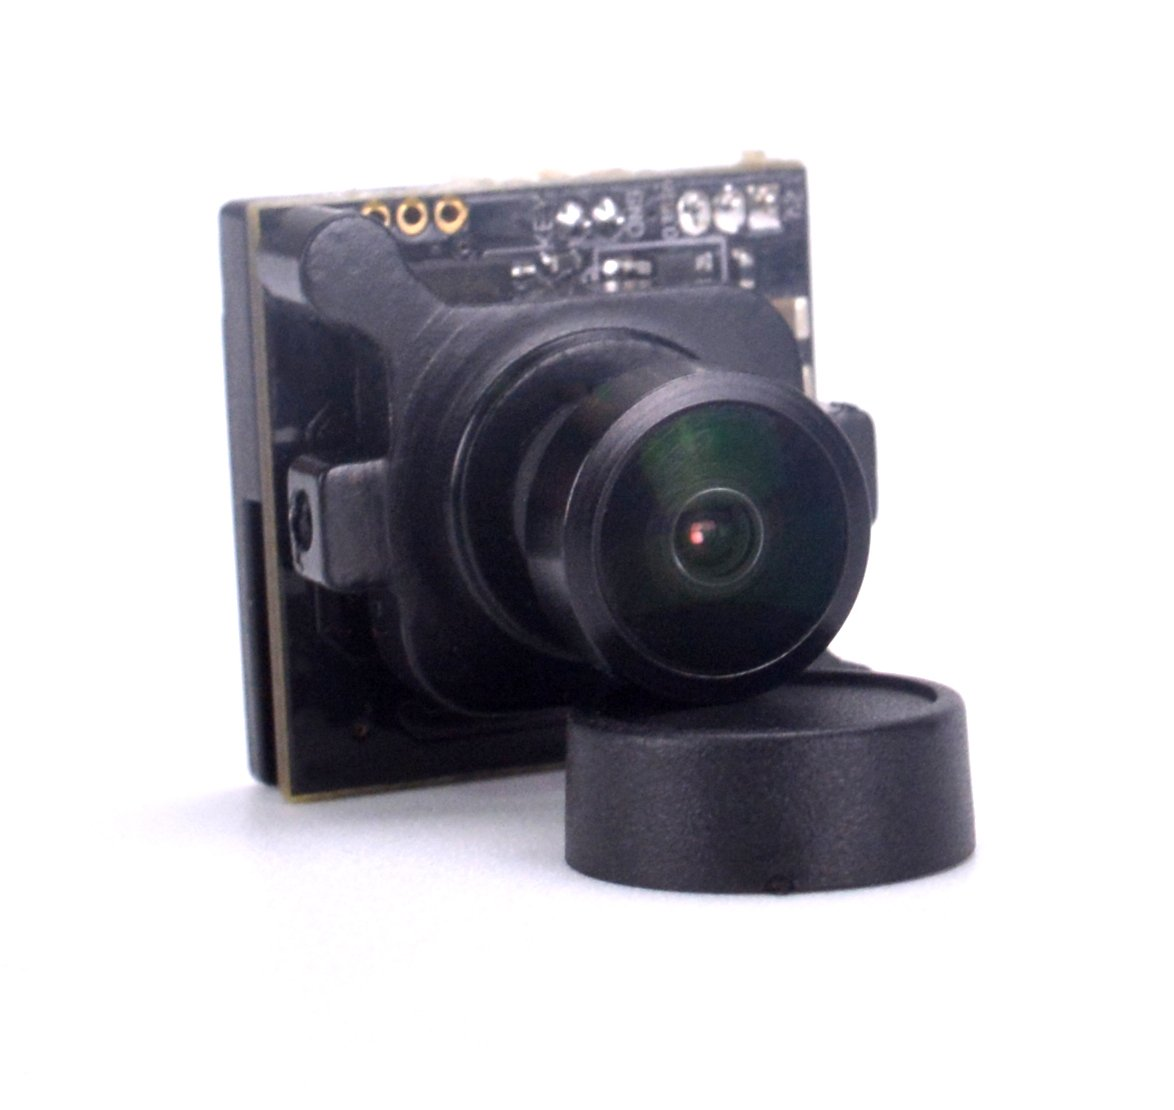 Readytosky Mini FPV Camera 1500TVL Camera 2.3mm 145 Degree Wide Anlge Lens 1/3'' CCD PAL/NTSC OSD Internal Adjustable